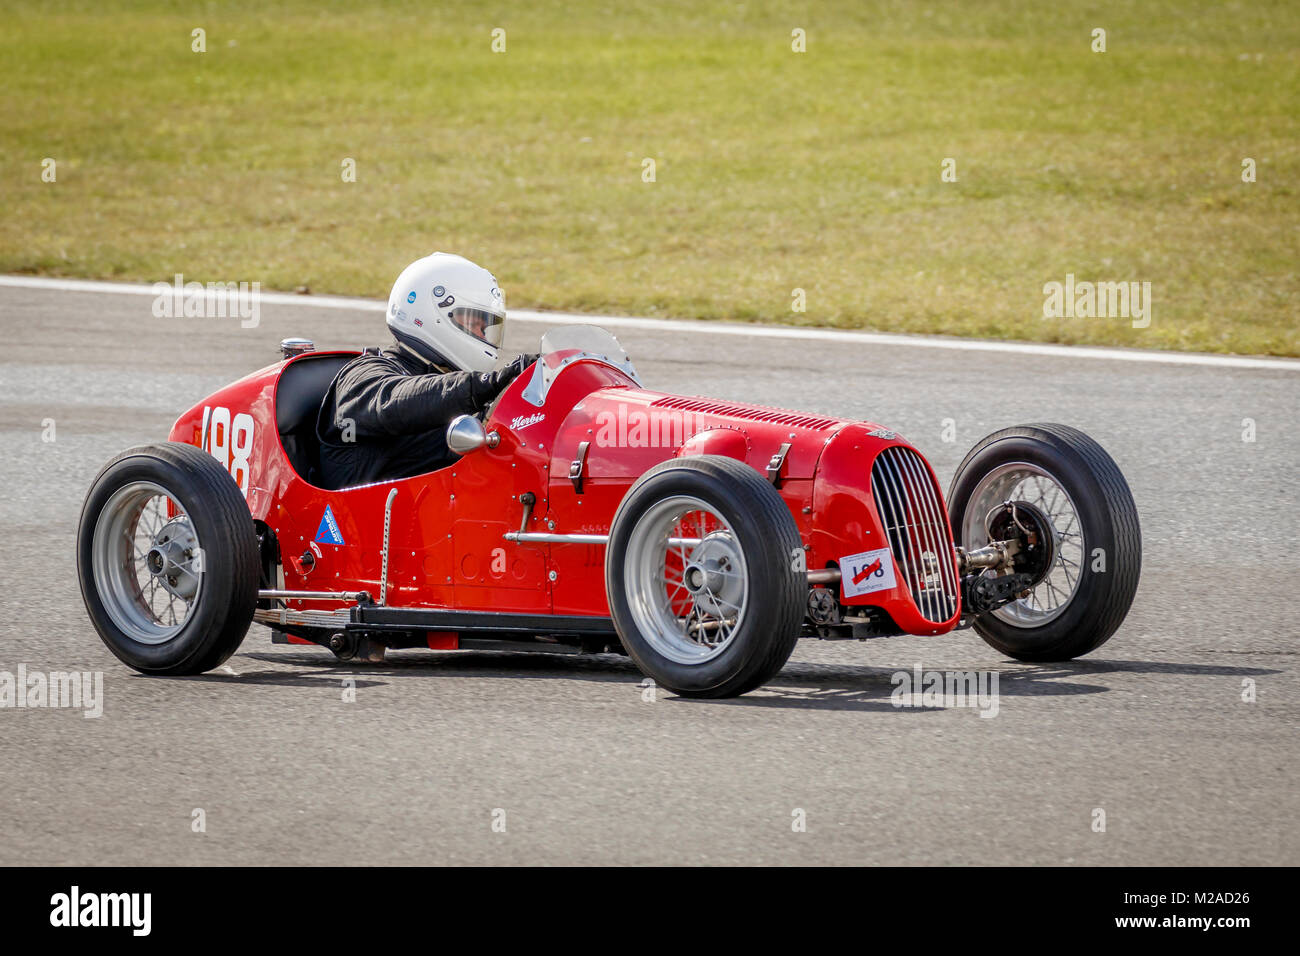 1937 Austin 7 Monoposto with driver James Ricketts at the 2017 Formula Vintage meeting, Snetterton, Norfolk, UK. - Stock Image